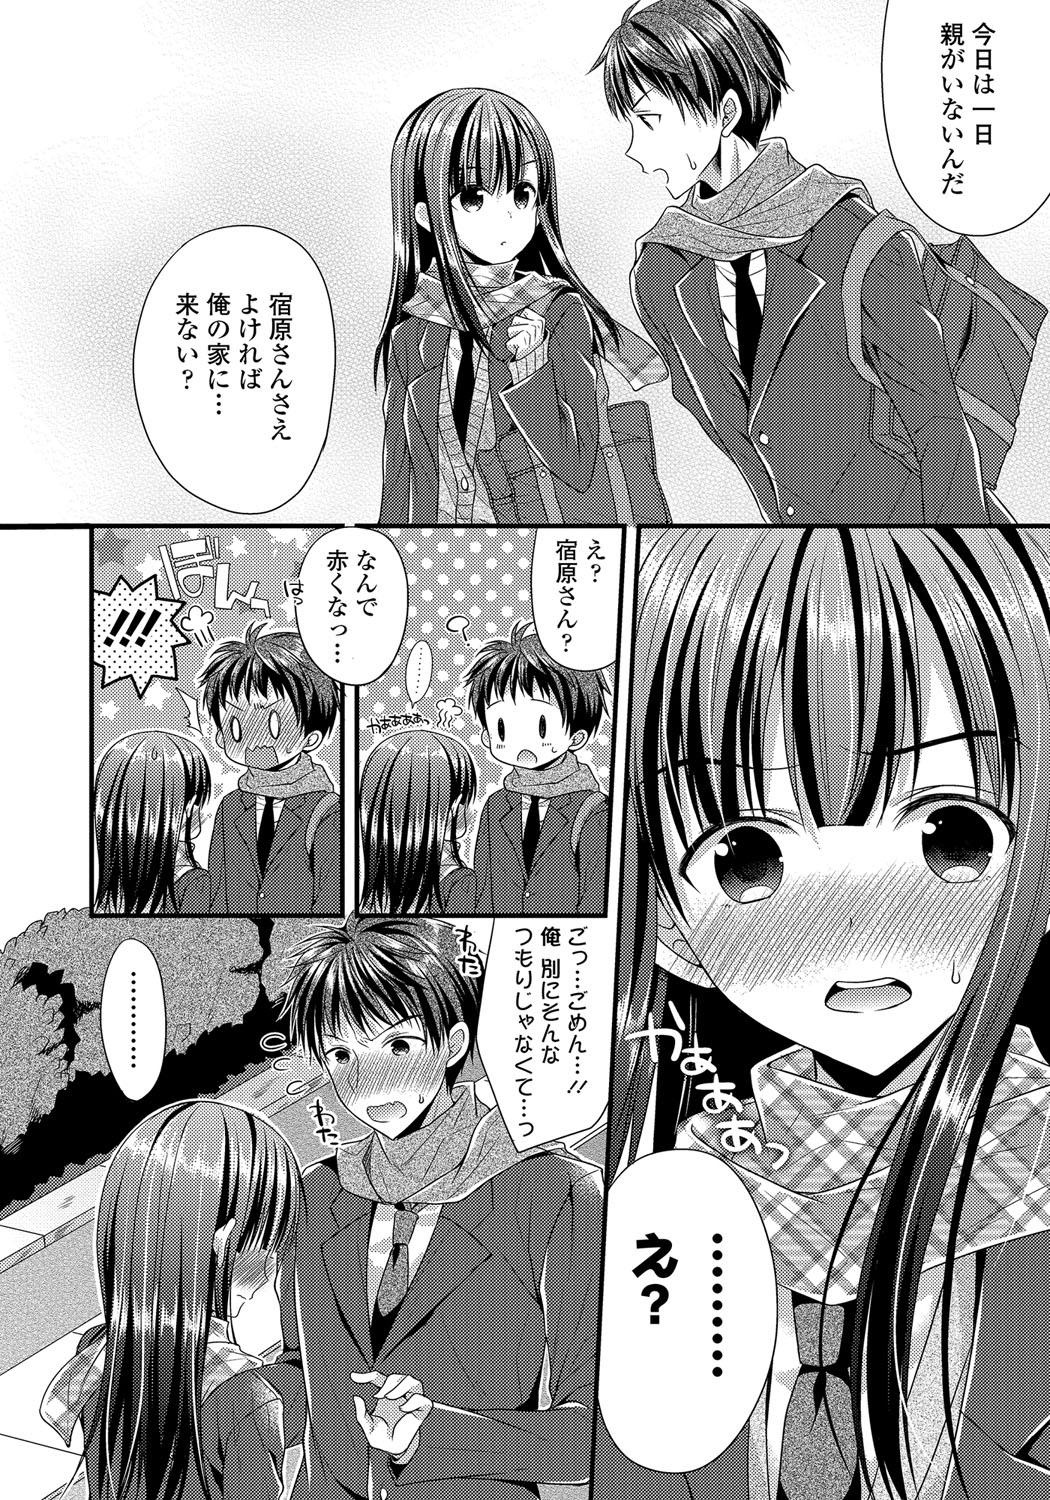 Kanojo to Hajimeteno - For the First Time with Her 26